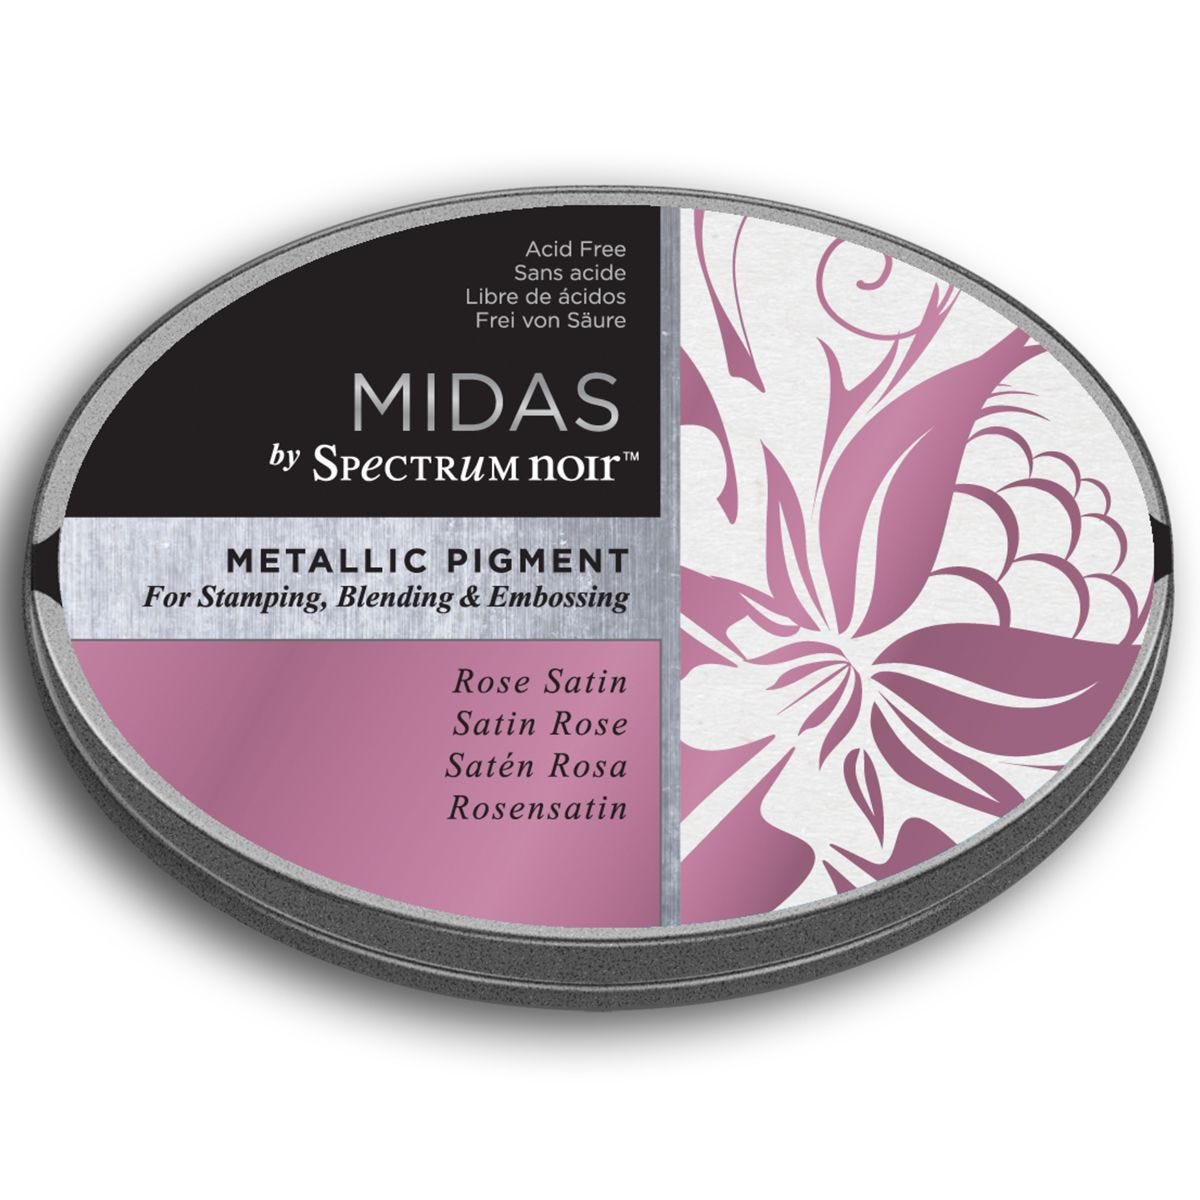 Midas by Spectrum Noir Metallic Pigment Inkpad - Rose Satin